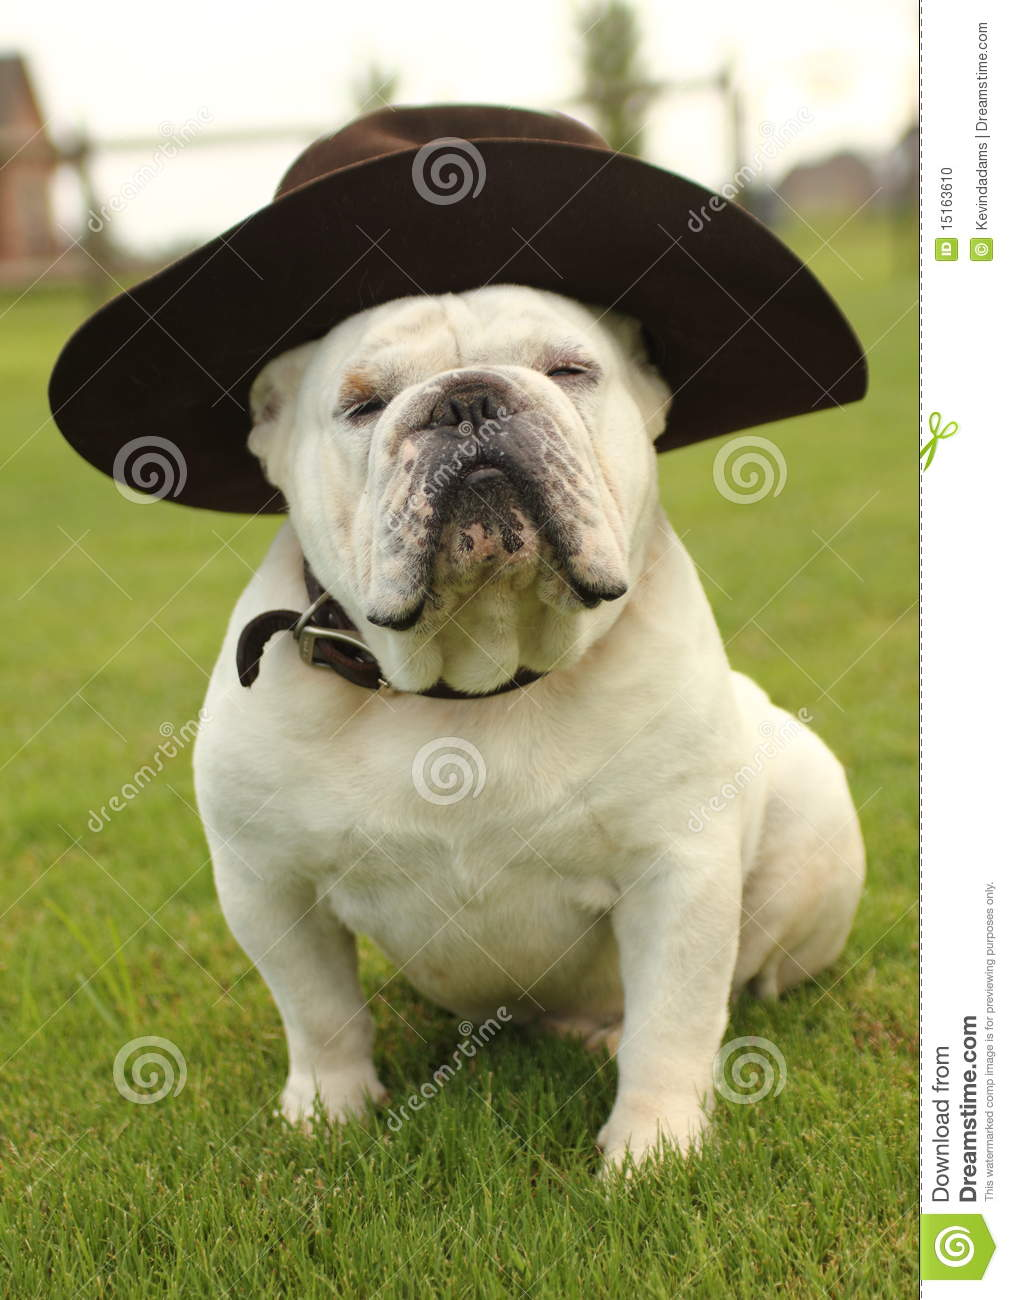 English Bulldog Wearing Hat Stock Photo Image Of Bulldog Funny